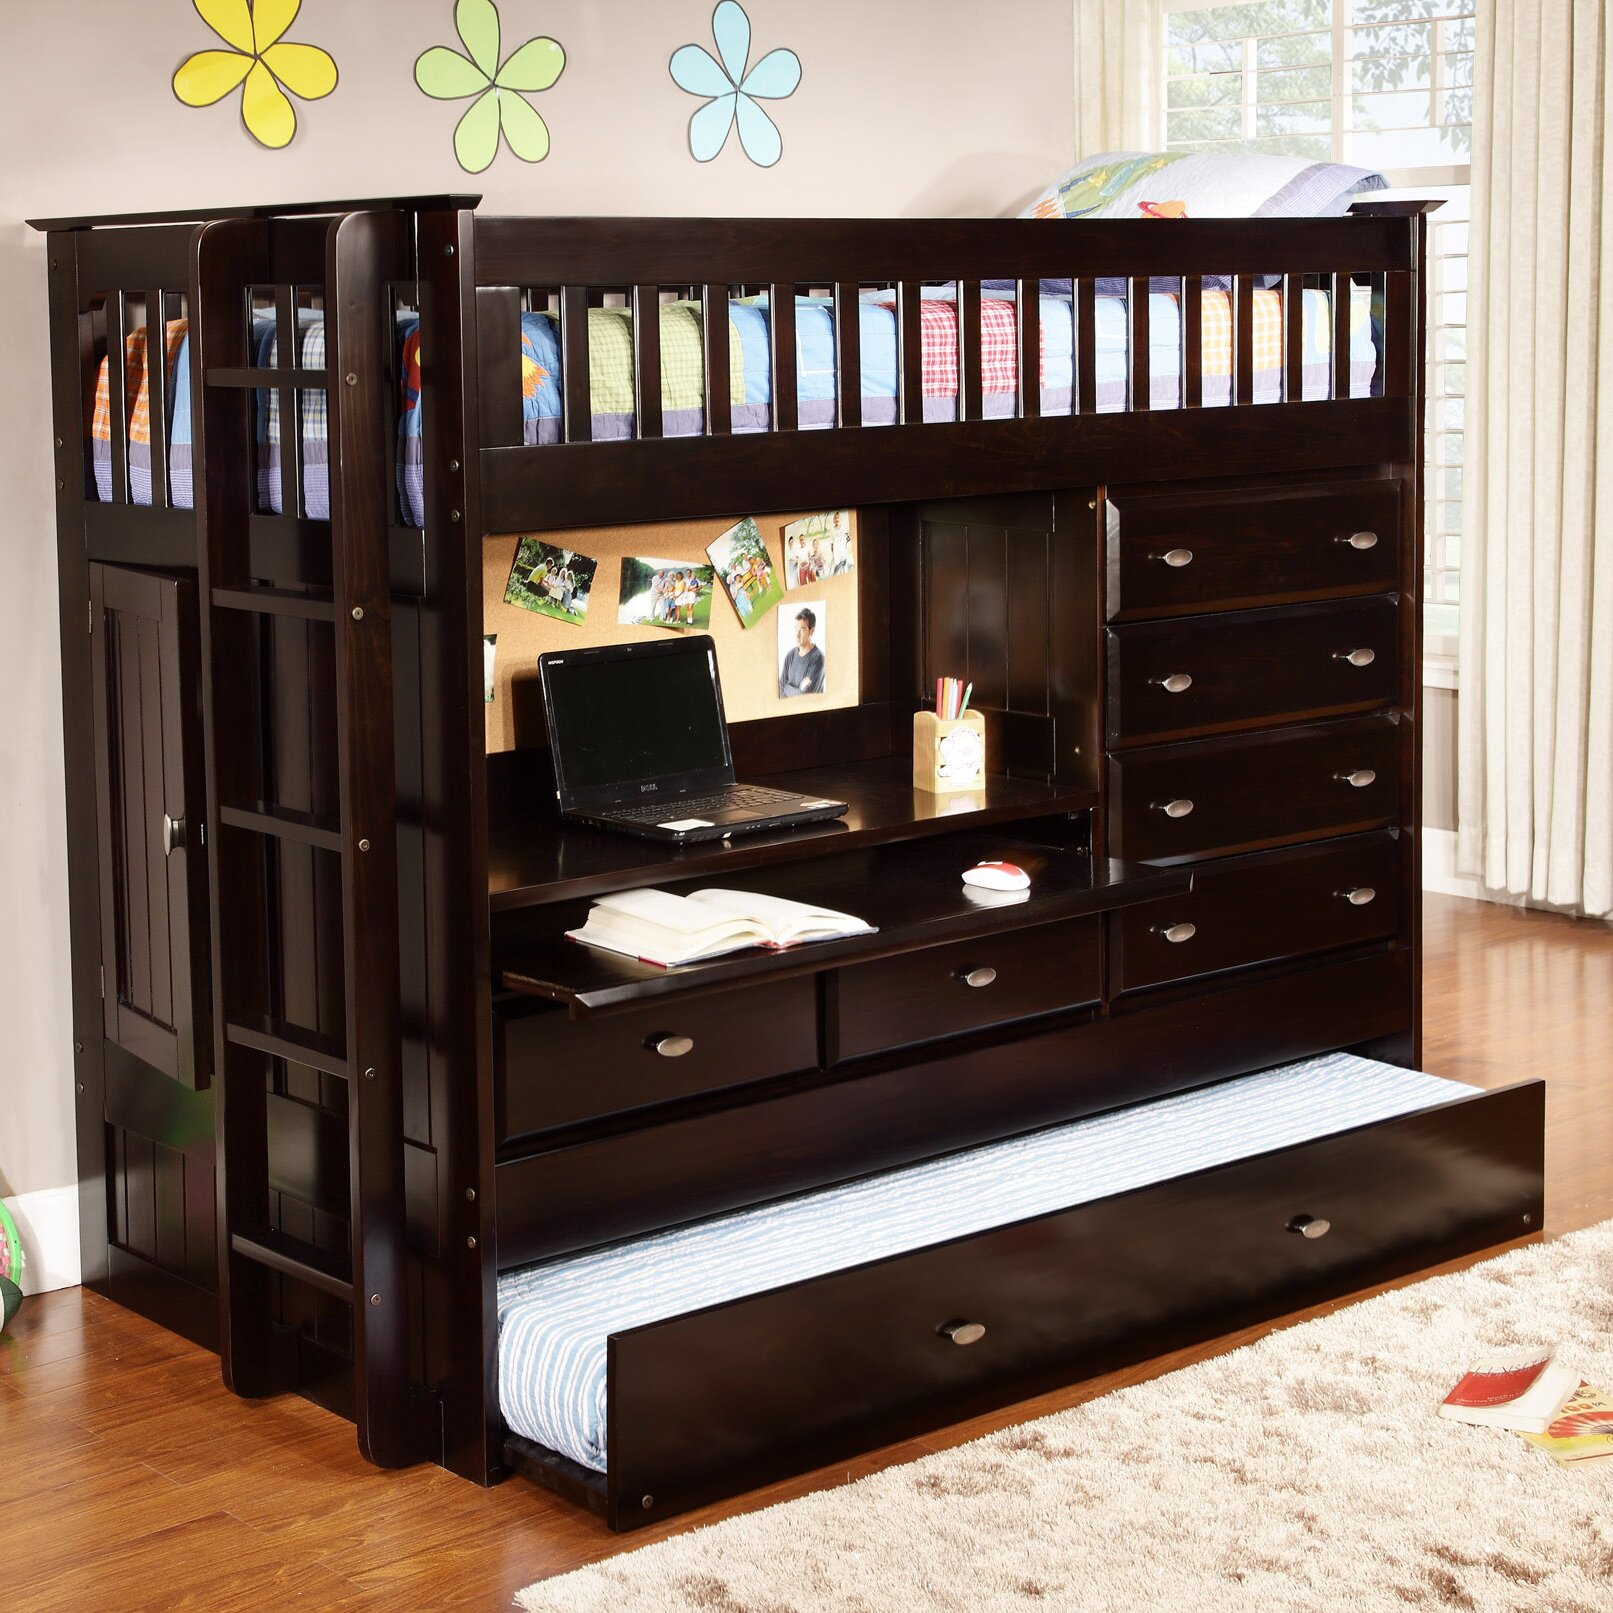 Discovery World Furniture All in One Extra long Twin Bunk Bed with